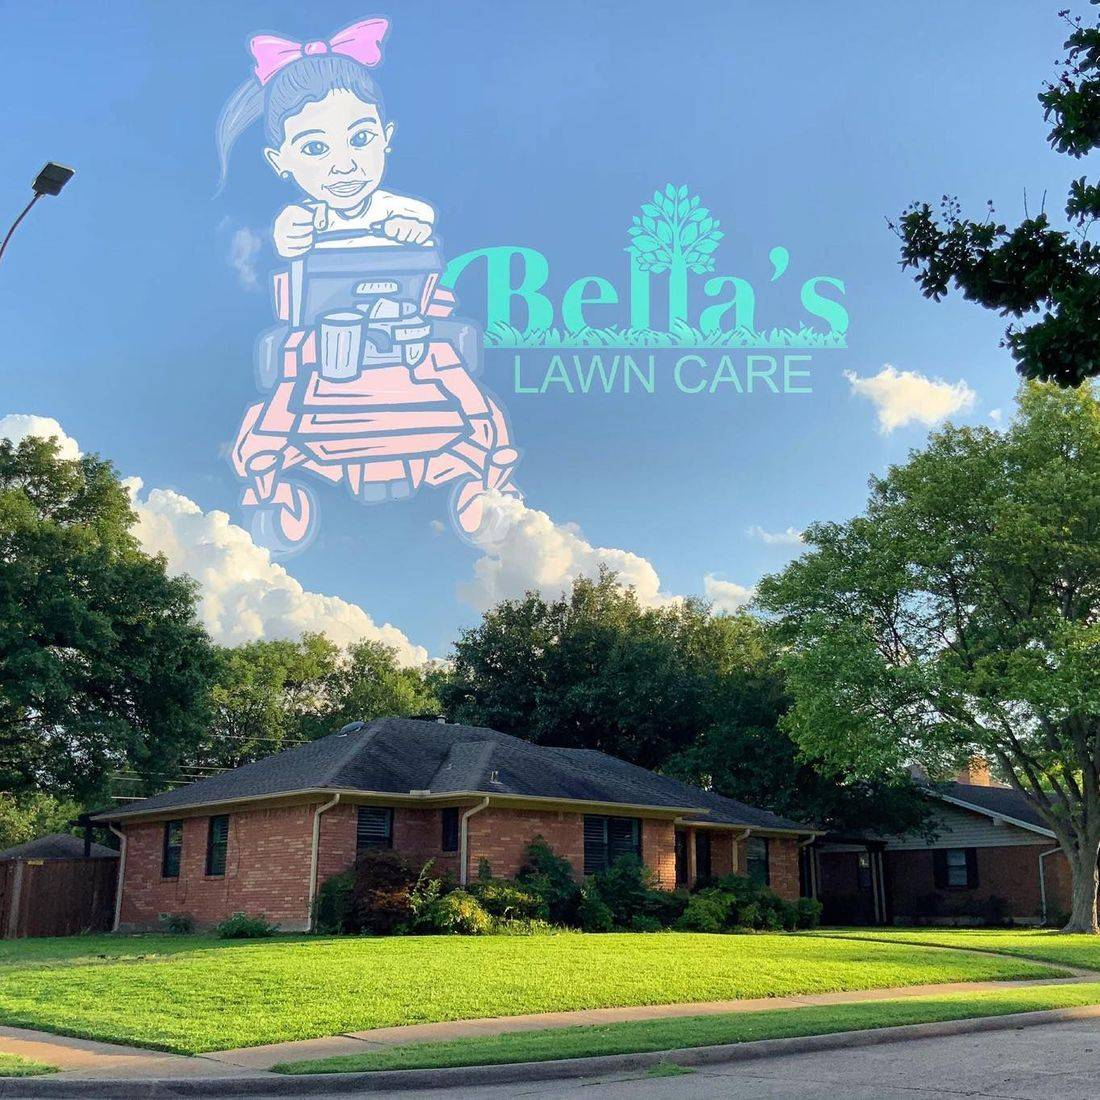 LAWN CARE GARLAND